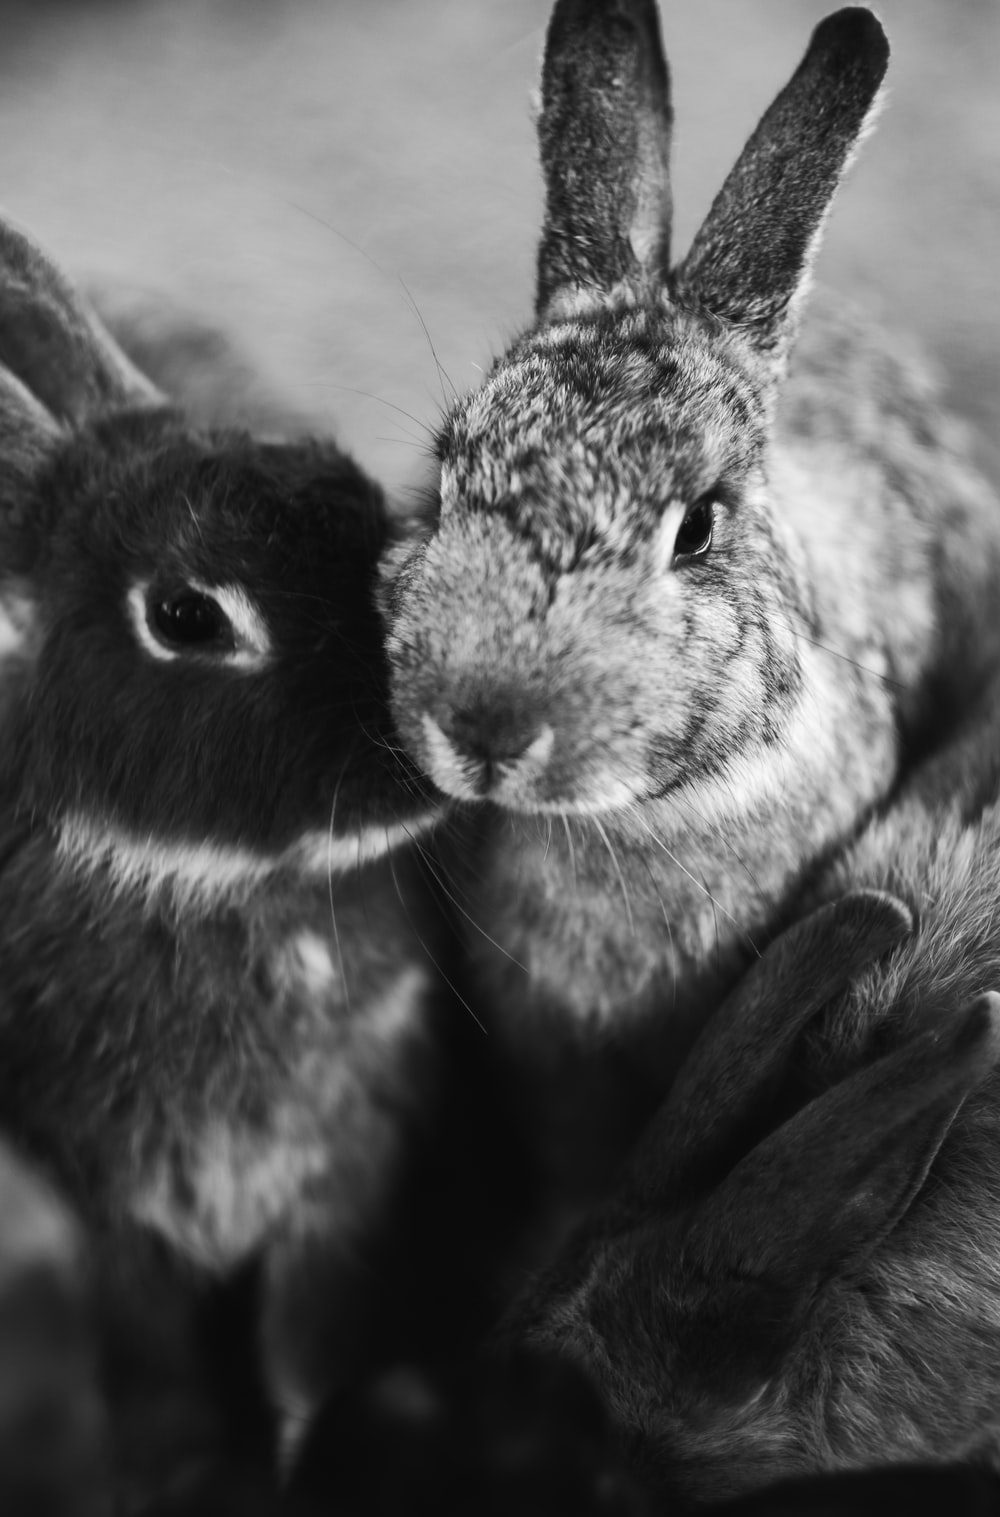 grayscale photography of rabbits